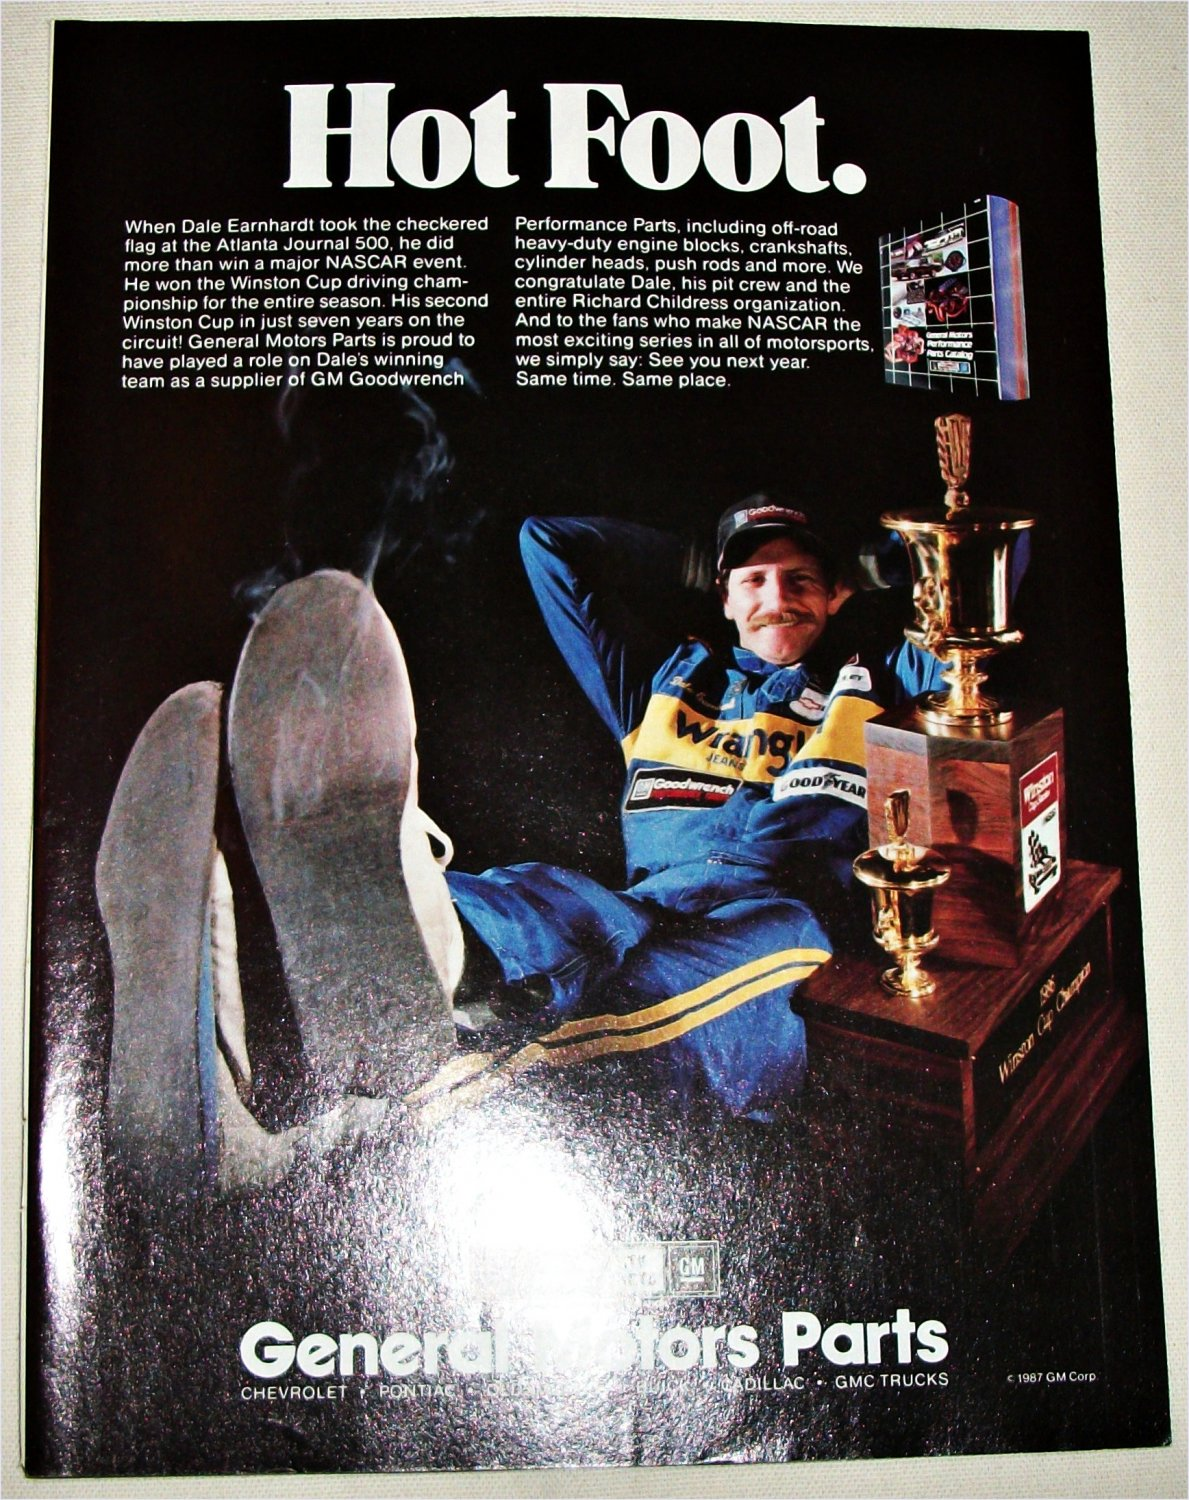 1987 GM ad featuring Dale Earnhardt